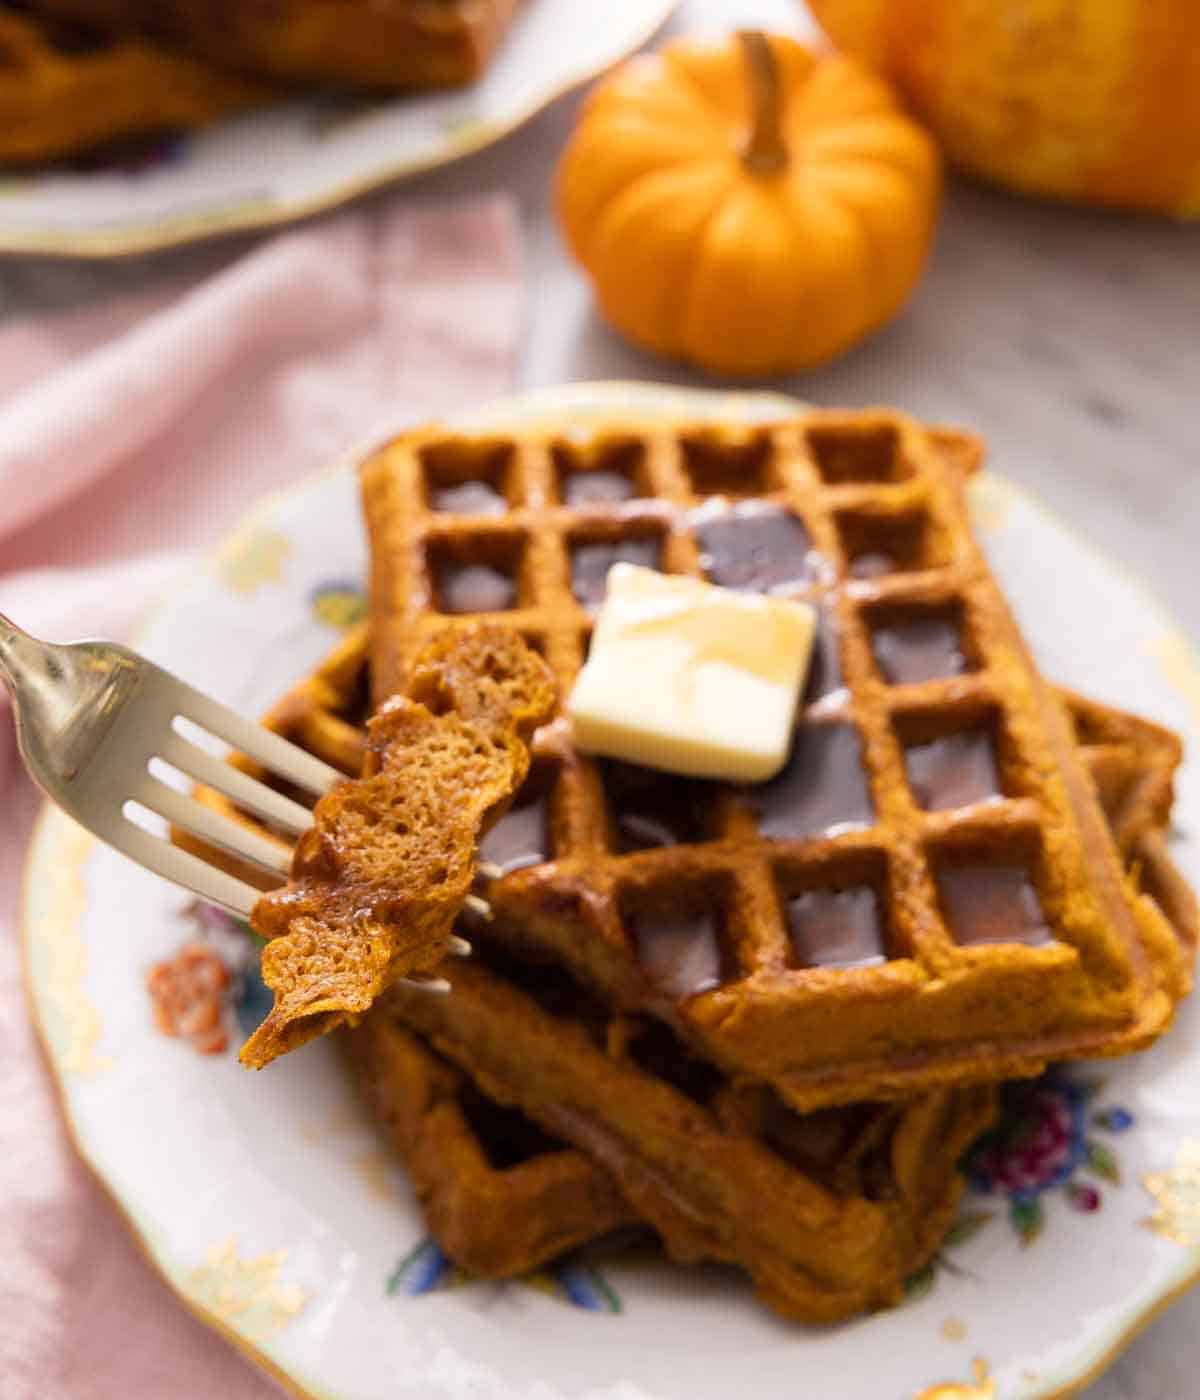 A fork with a piece of pumpkin waffle in front of a plate of waffles with syrup and butter.